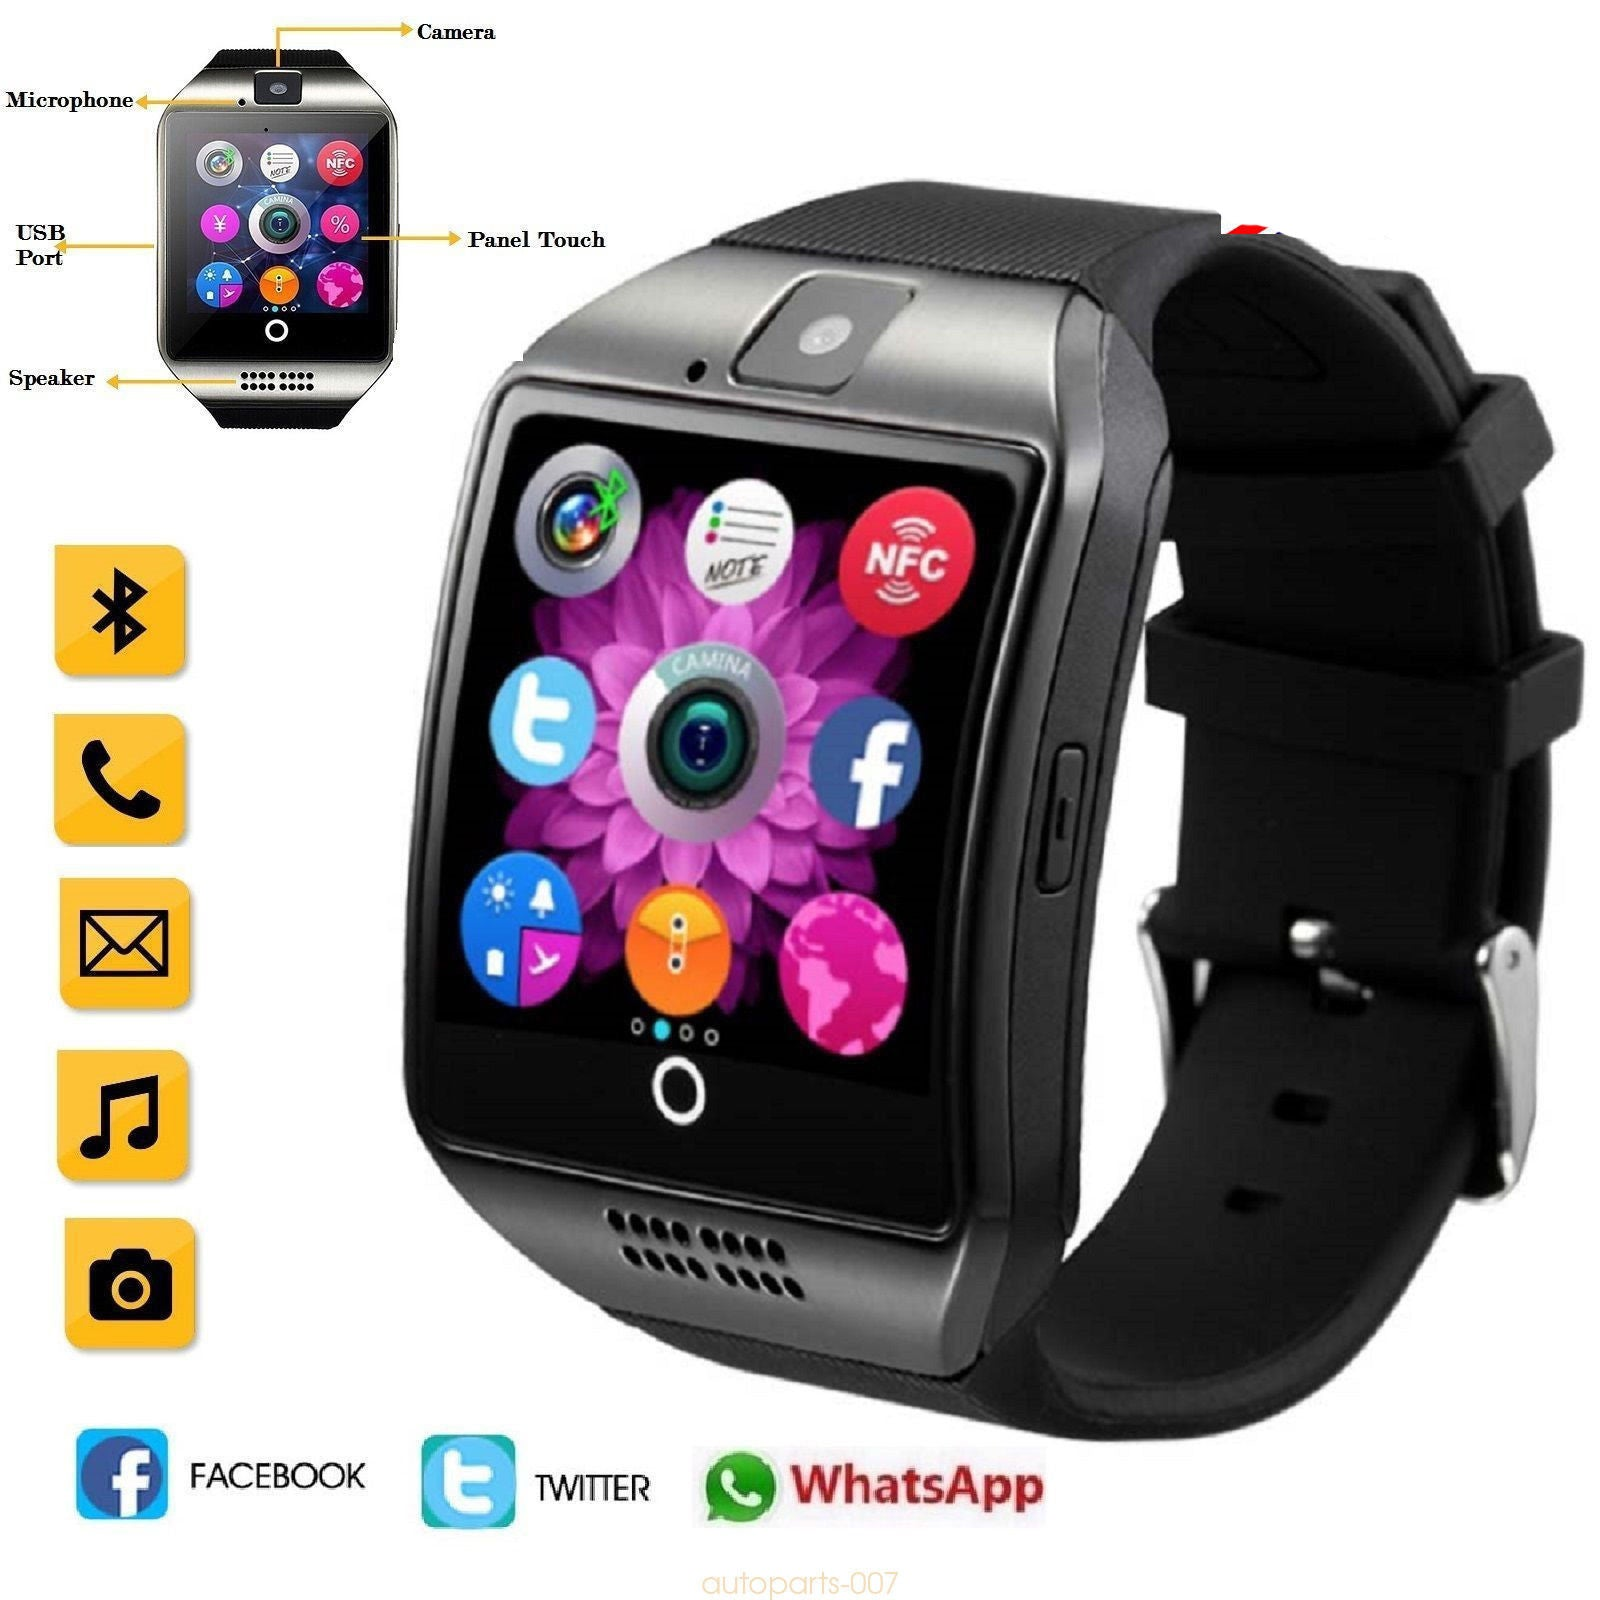 apple it beat reviews now s smartwatch review watch phone the still umqdrfvgycetcvbuaeriej series to cellular with mobile watches